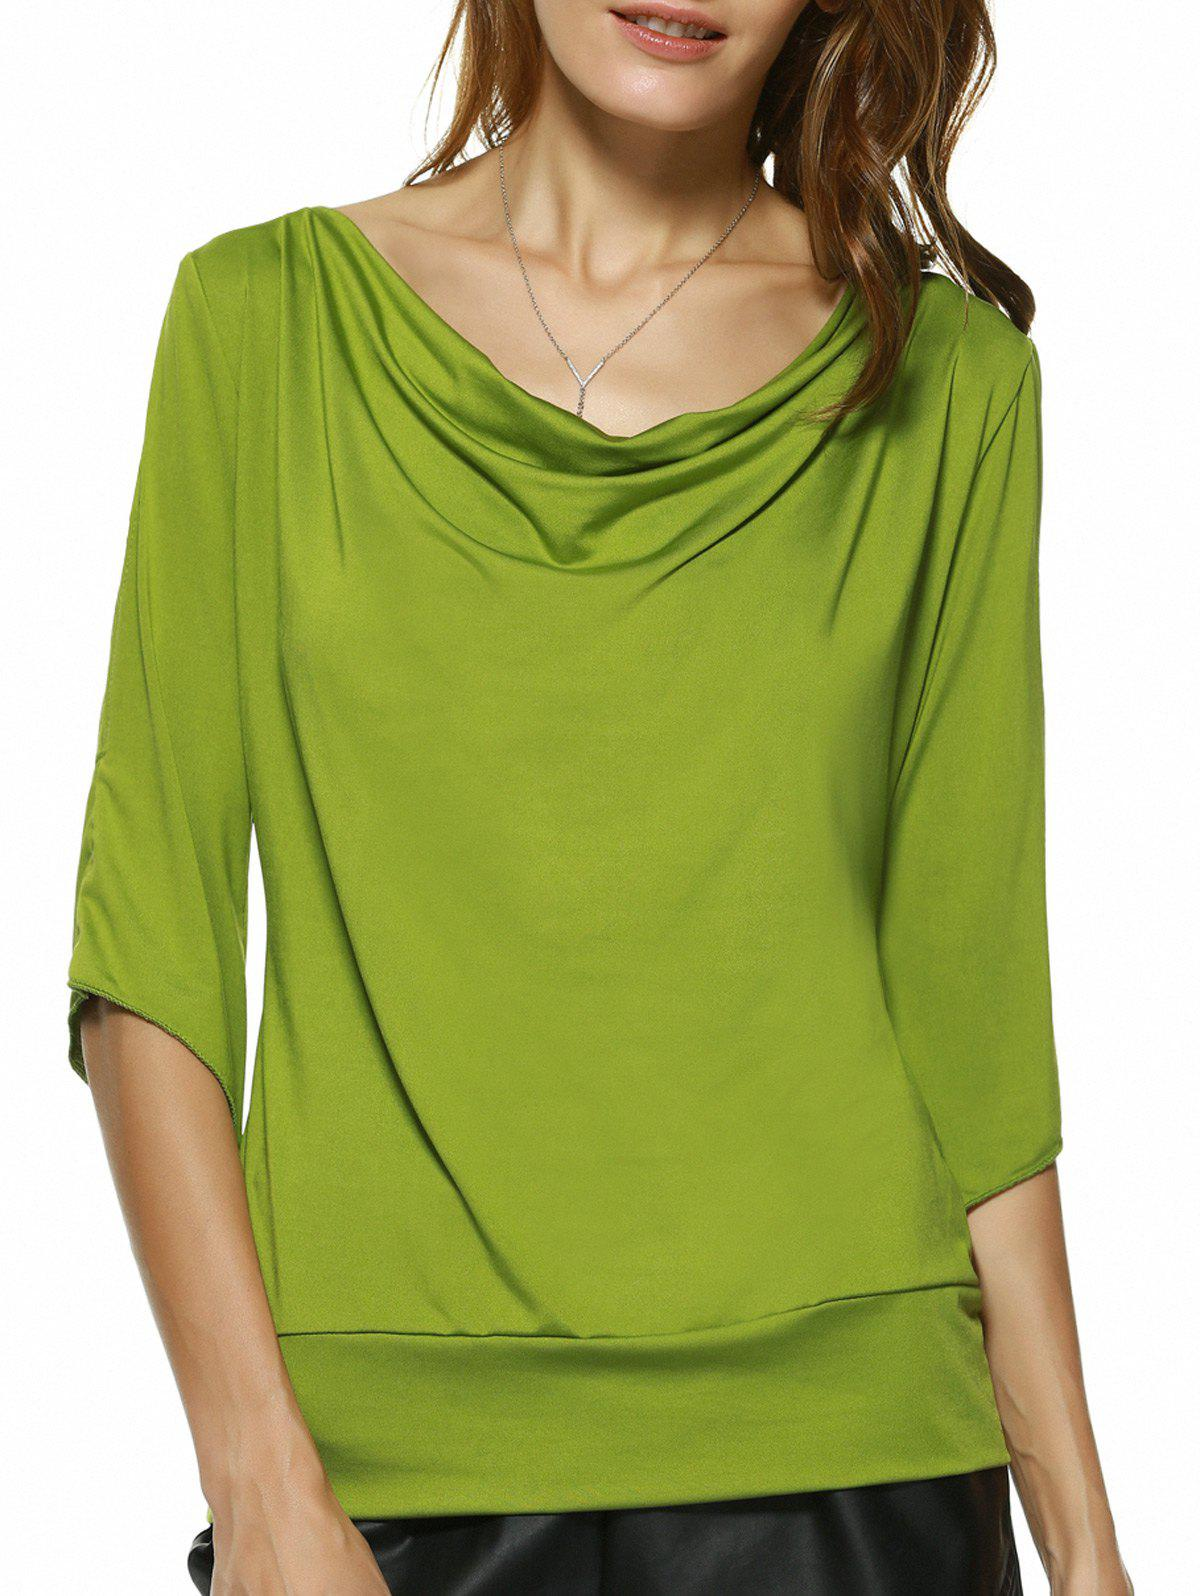 Charming Cowl Neck Solid Color Women's T-Shirt